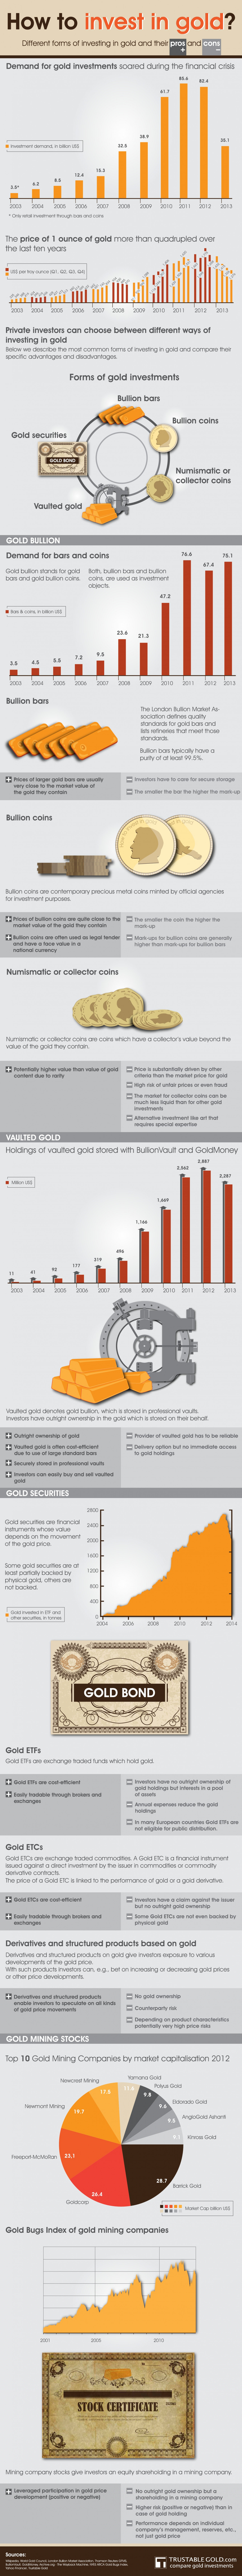 How to Invest in Gold? Infographic